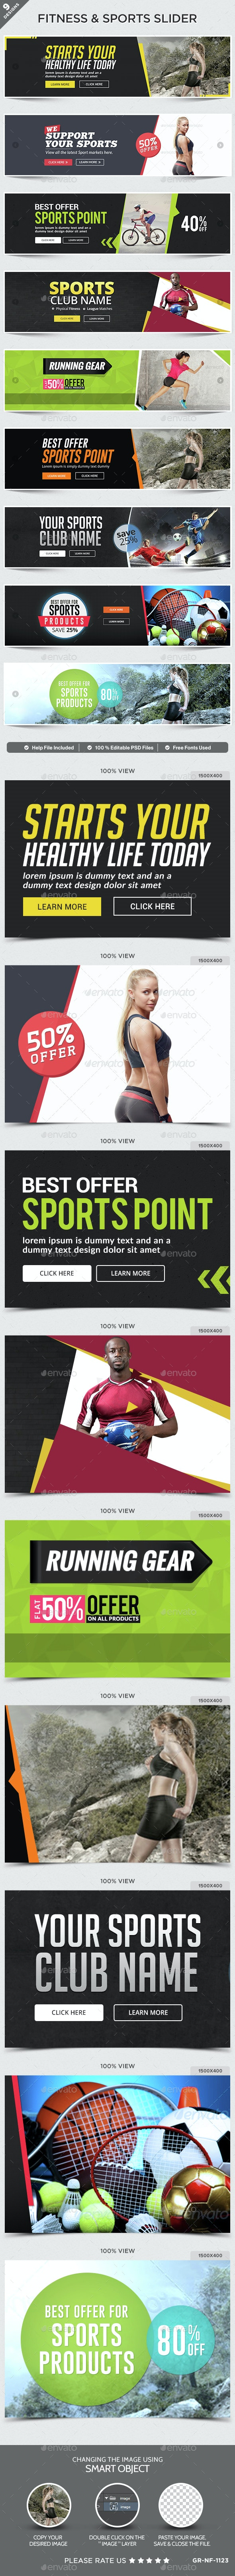 Fitness & Sports Sliders - 9 Designs - Sliders & Features Web Elements